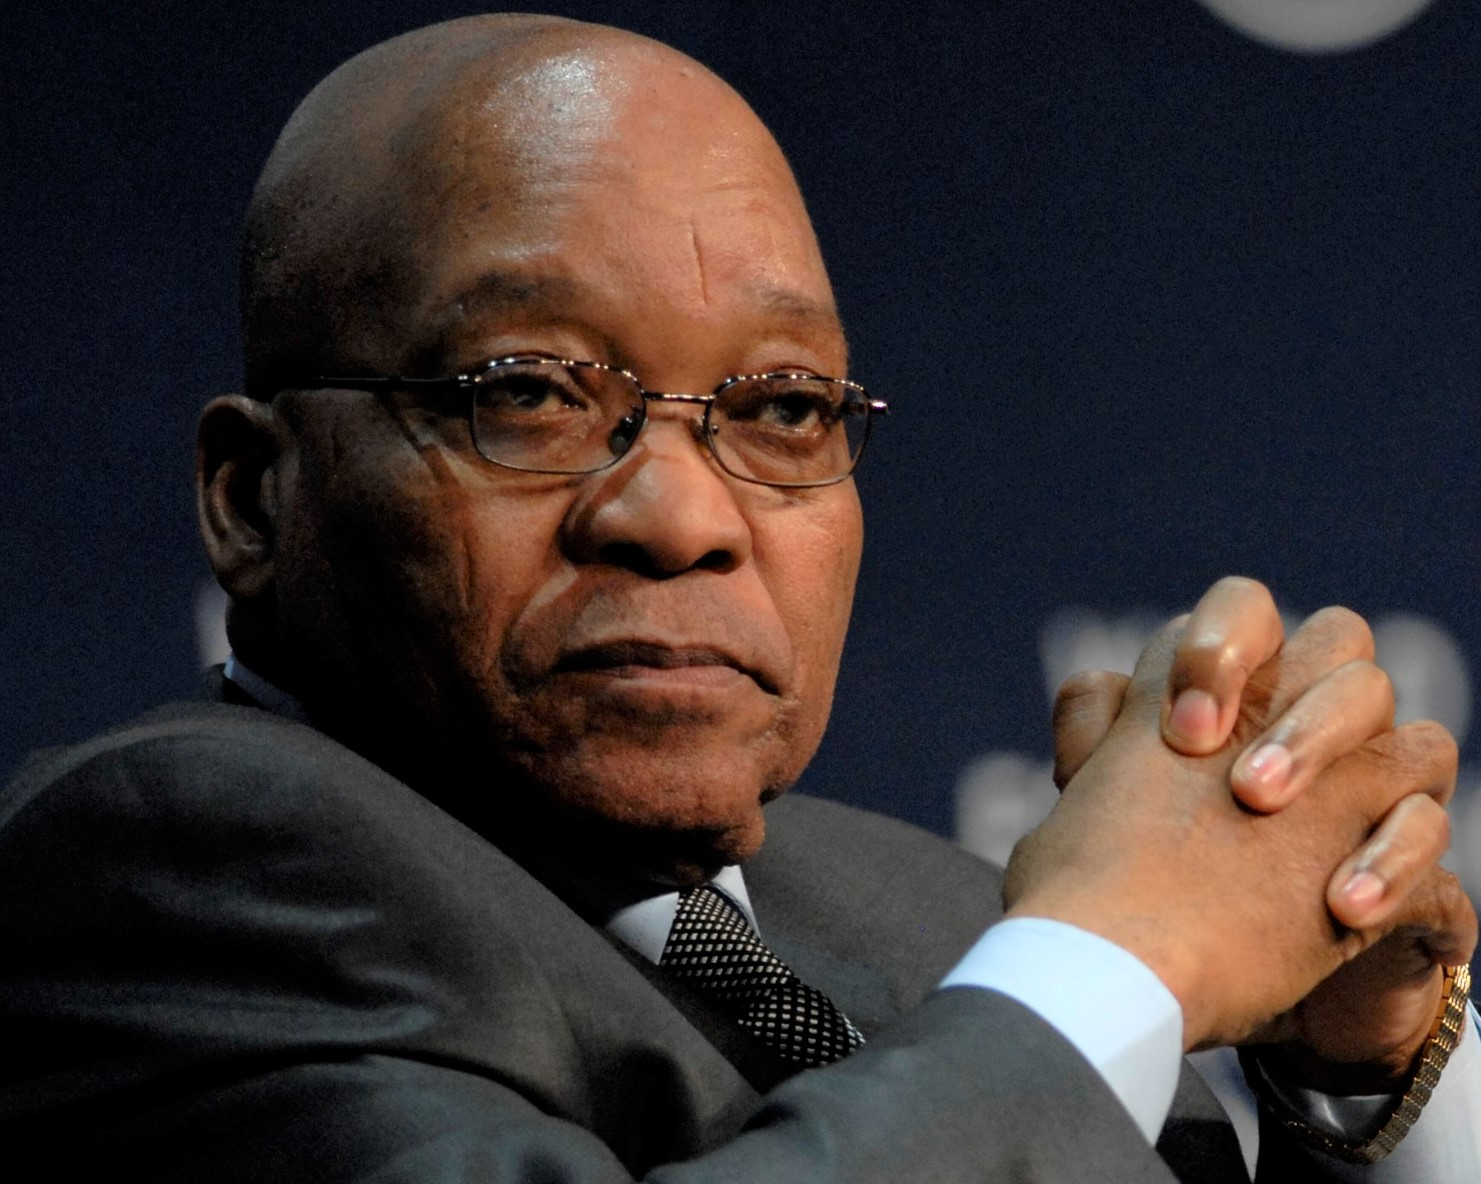 South Africa's former president has been sentenced to prison due to contempt of court